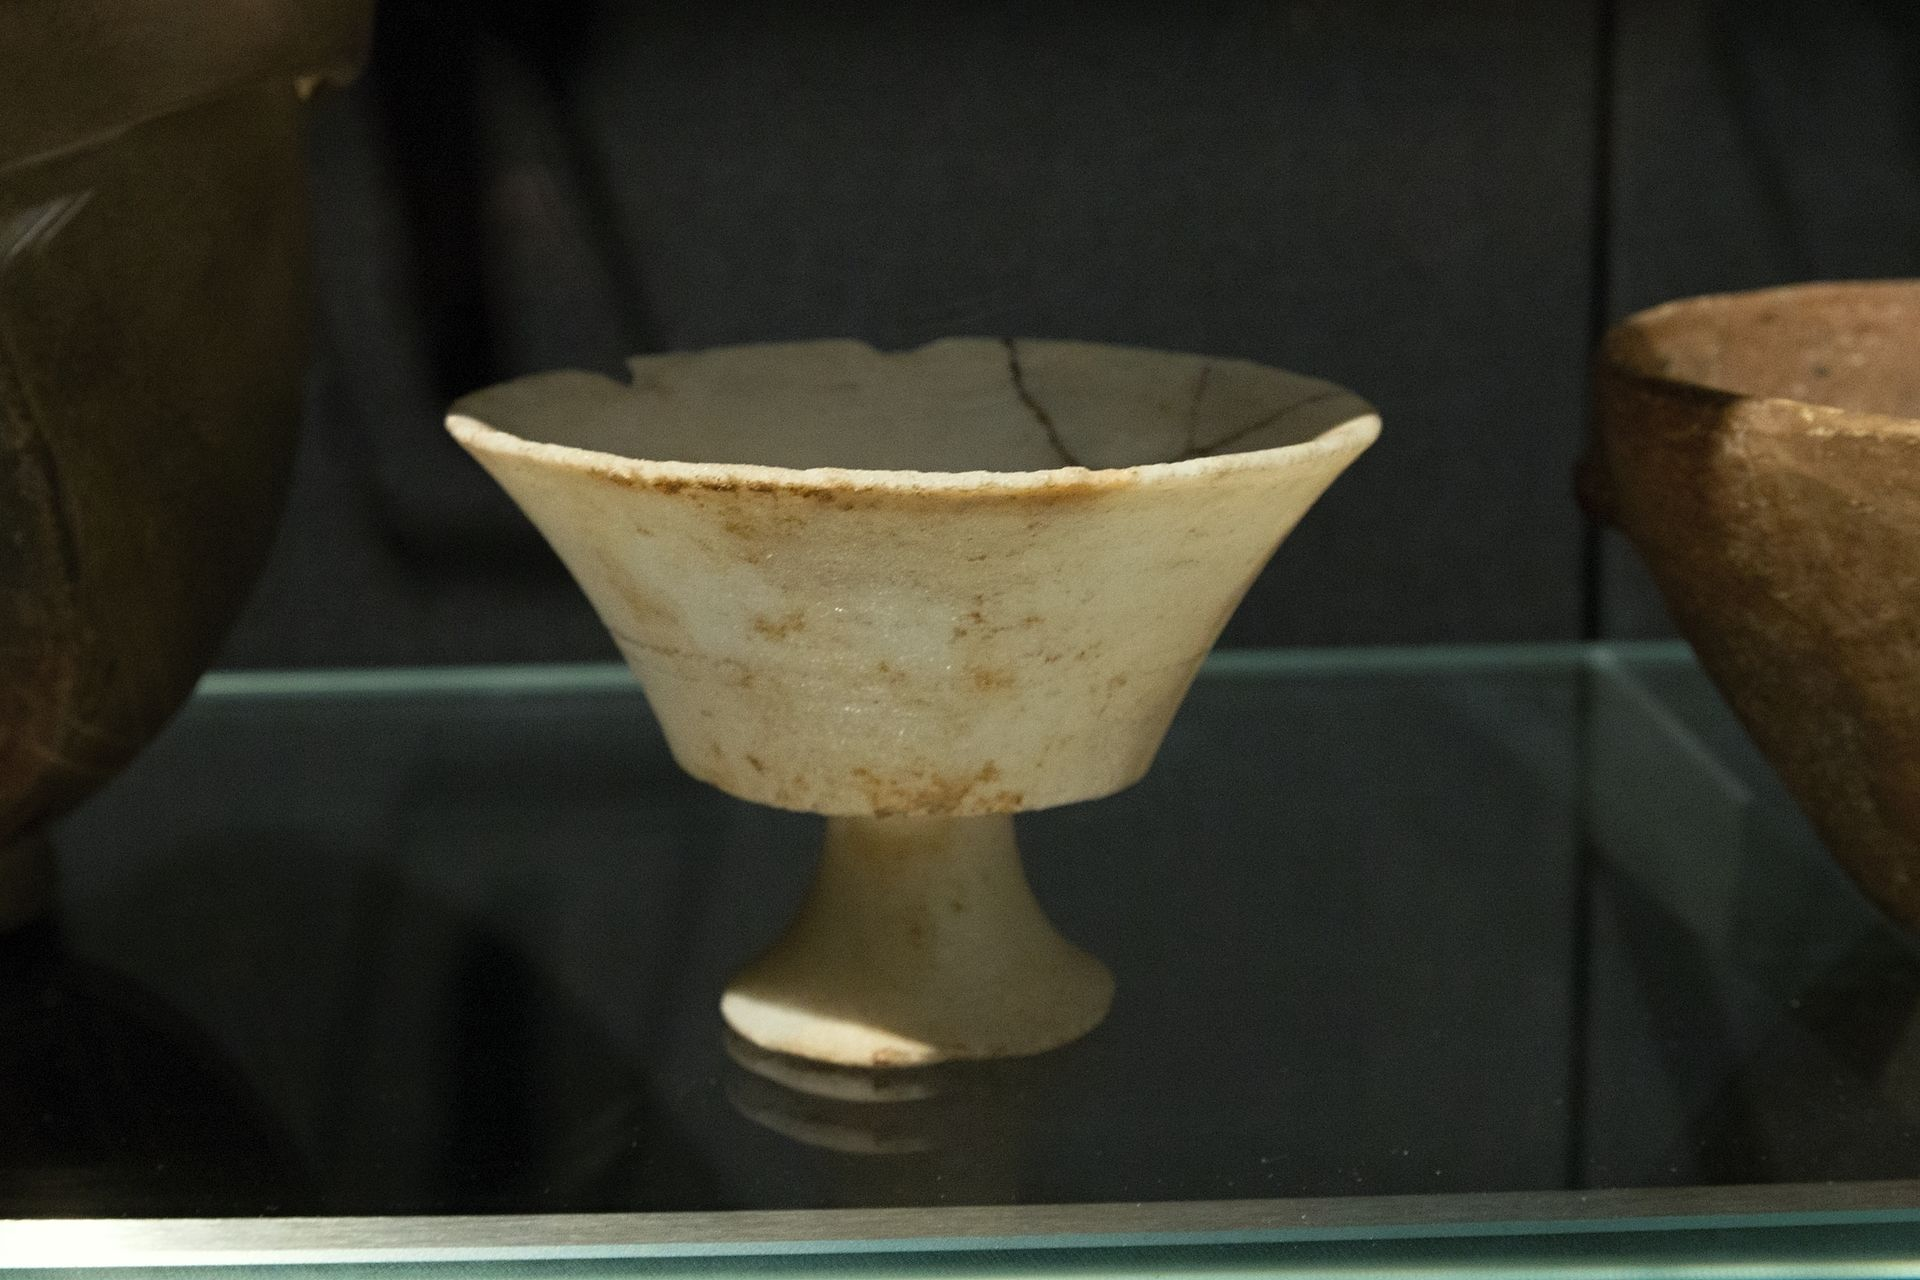 Chalice,_Cycladic_marble_cup,_2700-2200_BC,_BM,_GR_1912,6-26,11,_154382.jpg